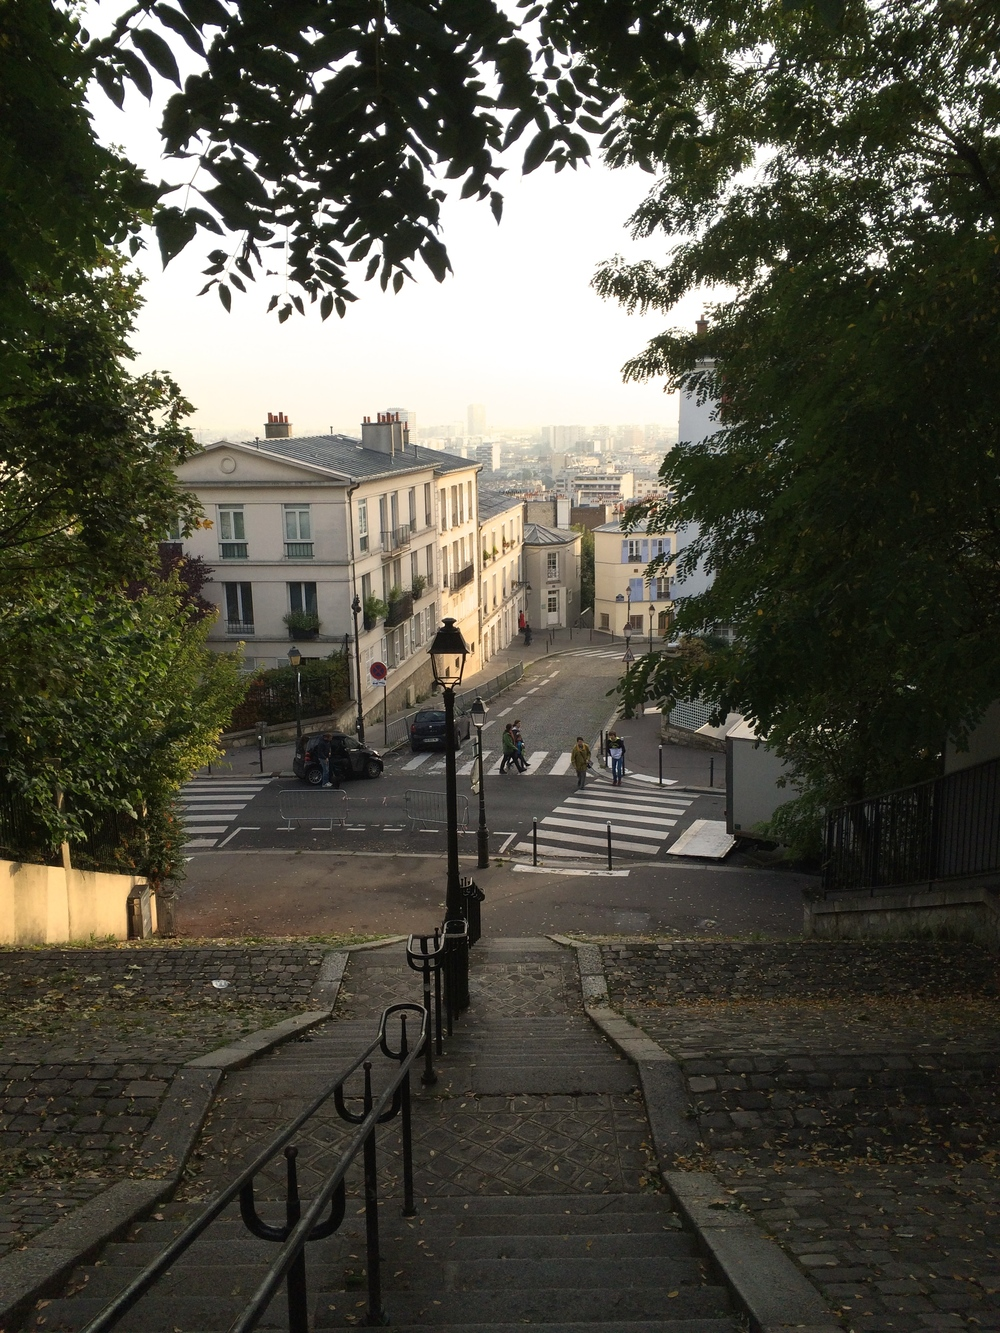 Just below Le Sacre Coeur